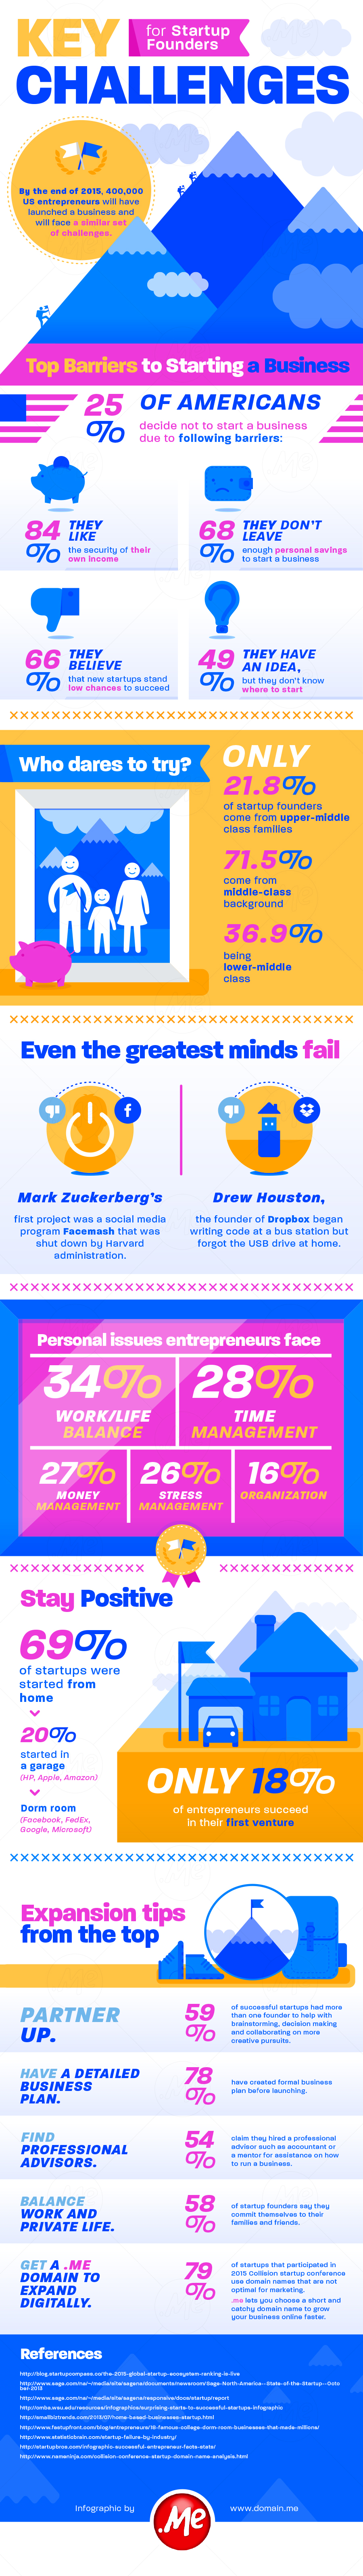 [INFOGRAPHIC] Key Challenges for Startup Founders